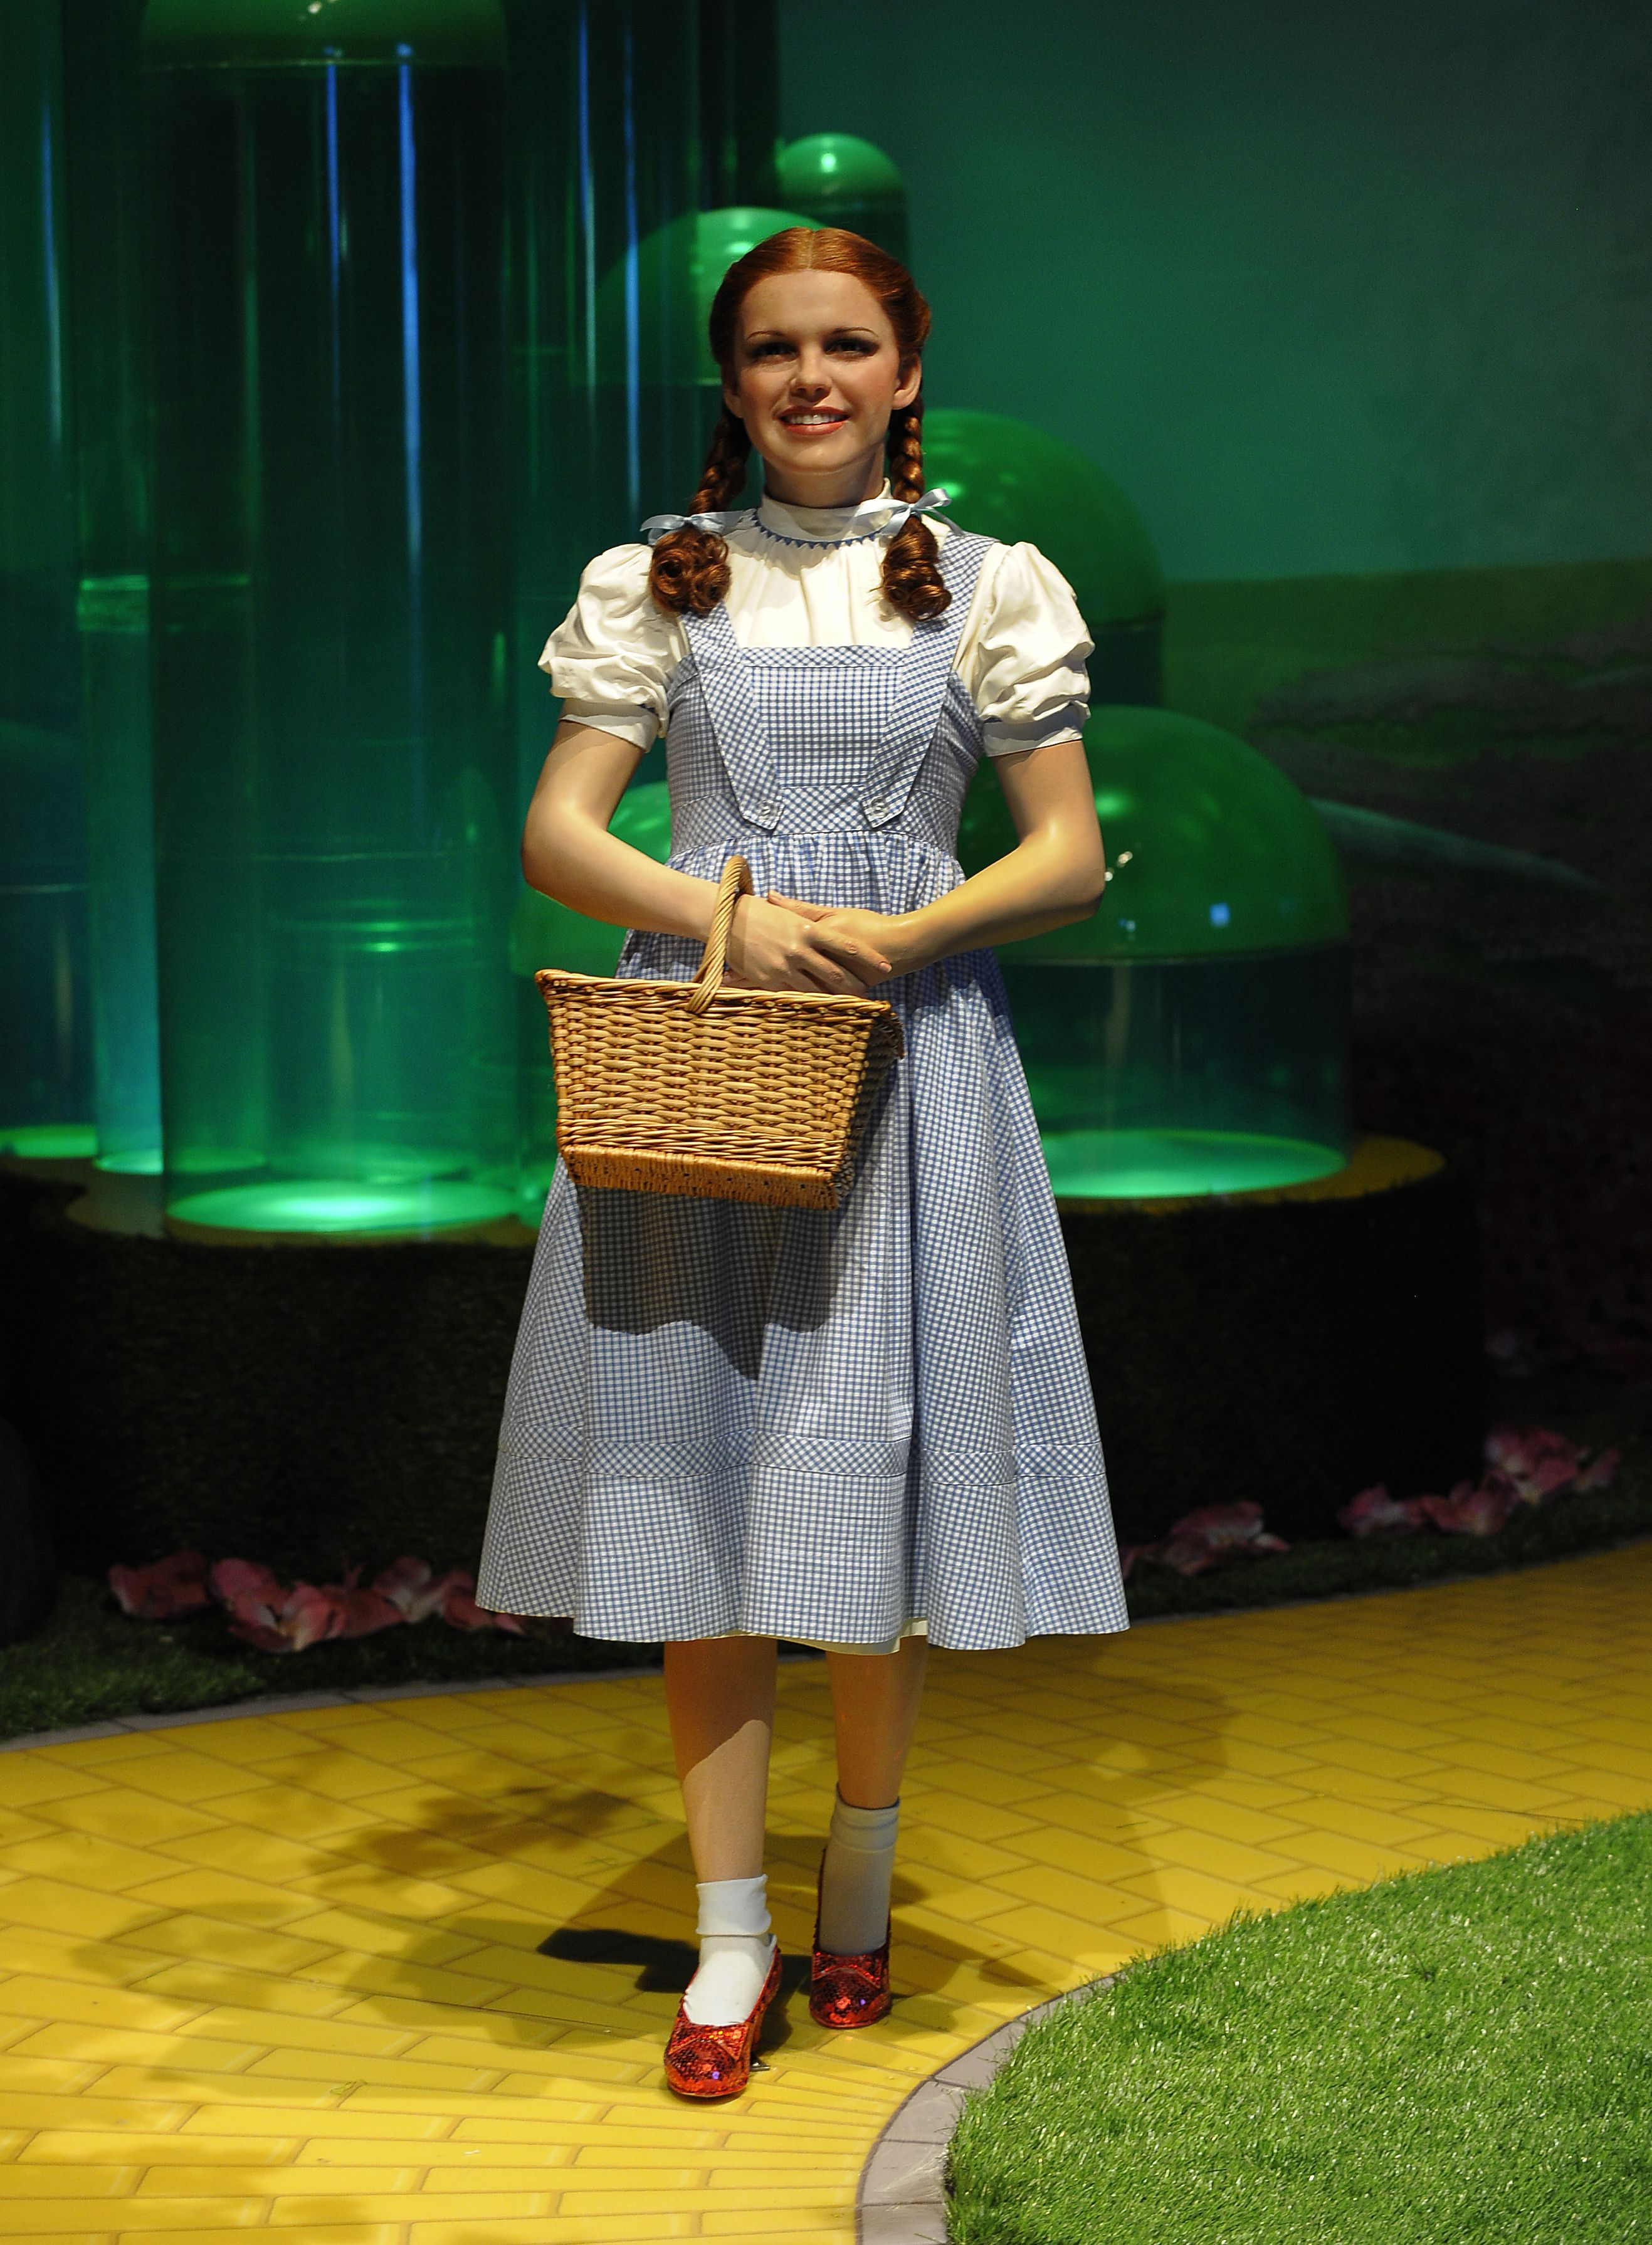 LOS ANGELES (CBS/AP) — The Dorothy dress is going up for auction ...